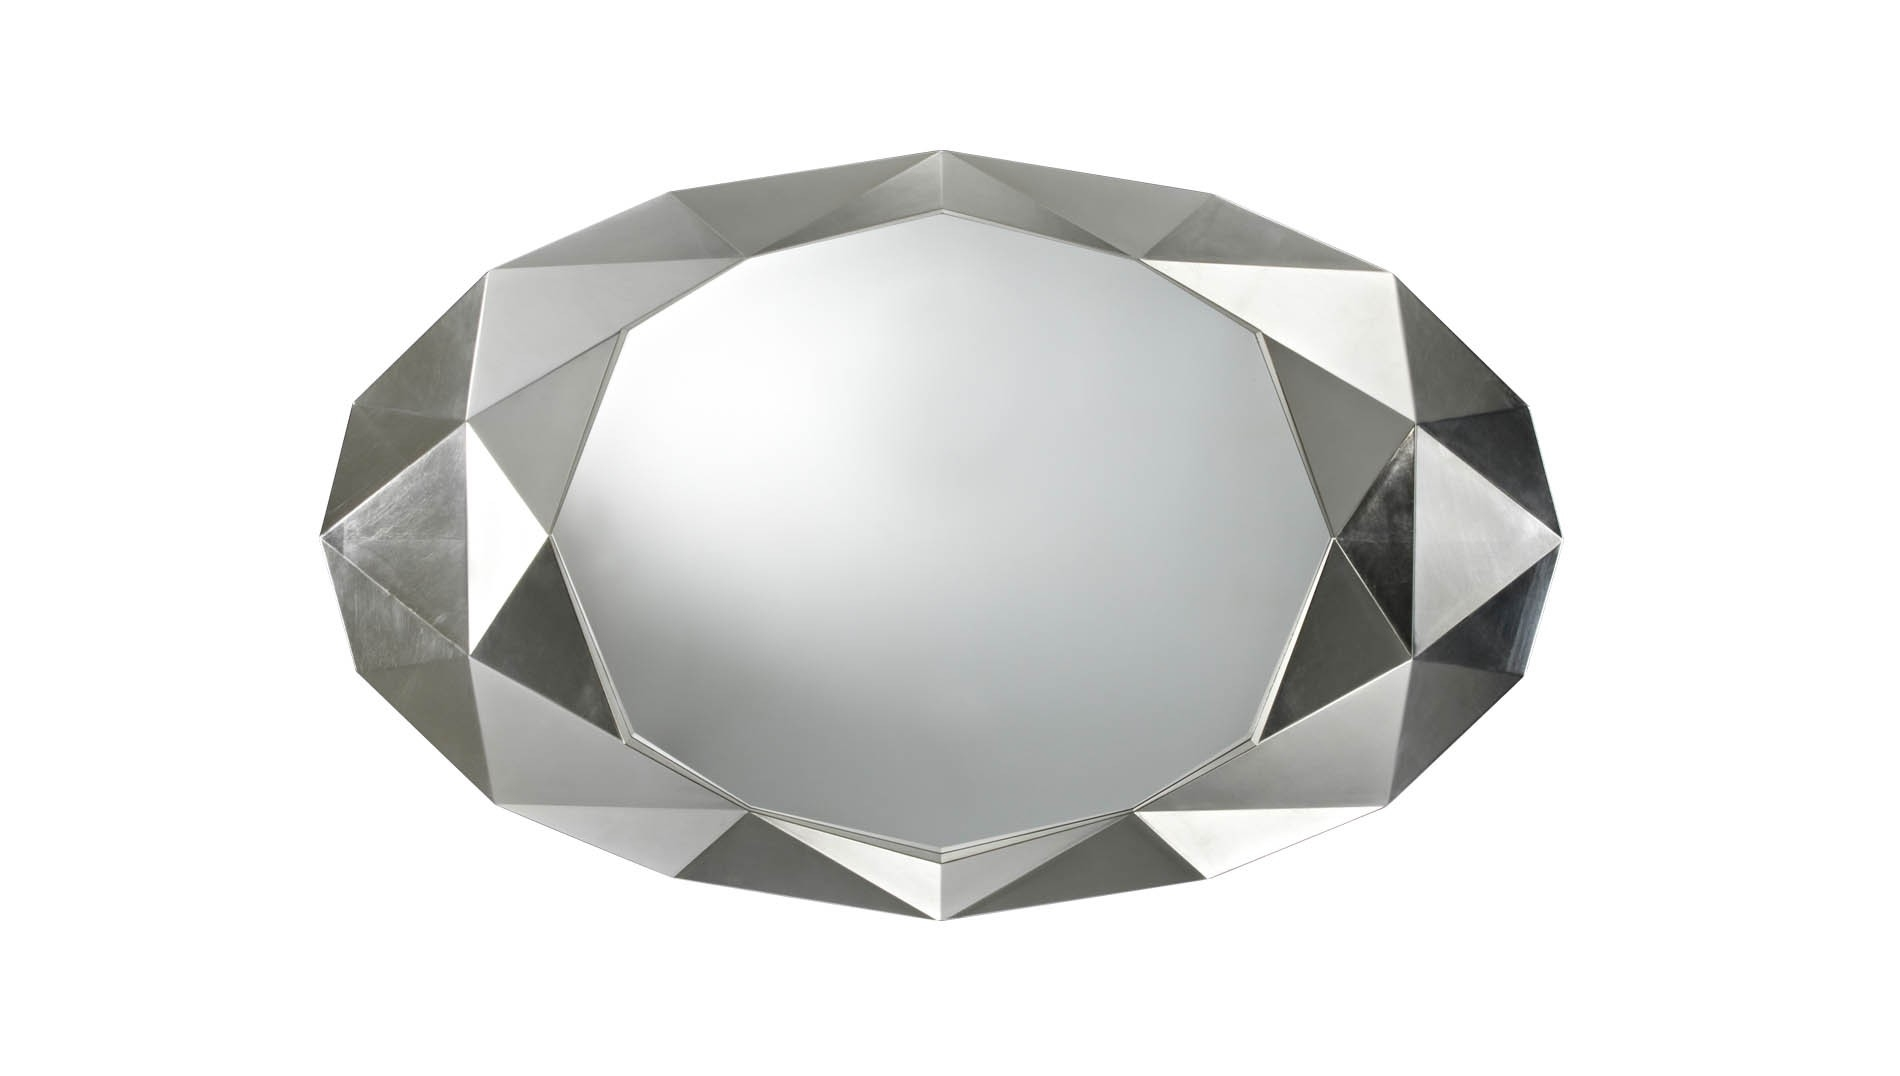 Deknudt Precious Silver Mirror Buy Online At Luxdeco Pertaining To Buy A Mirror (Image 11 of 15)